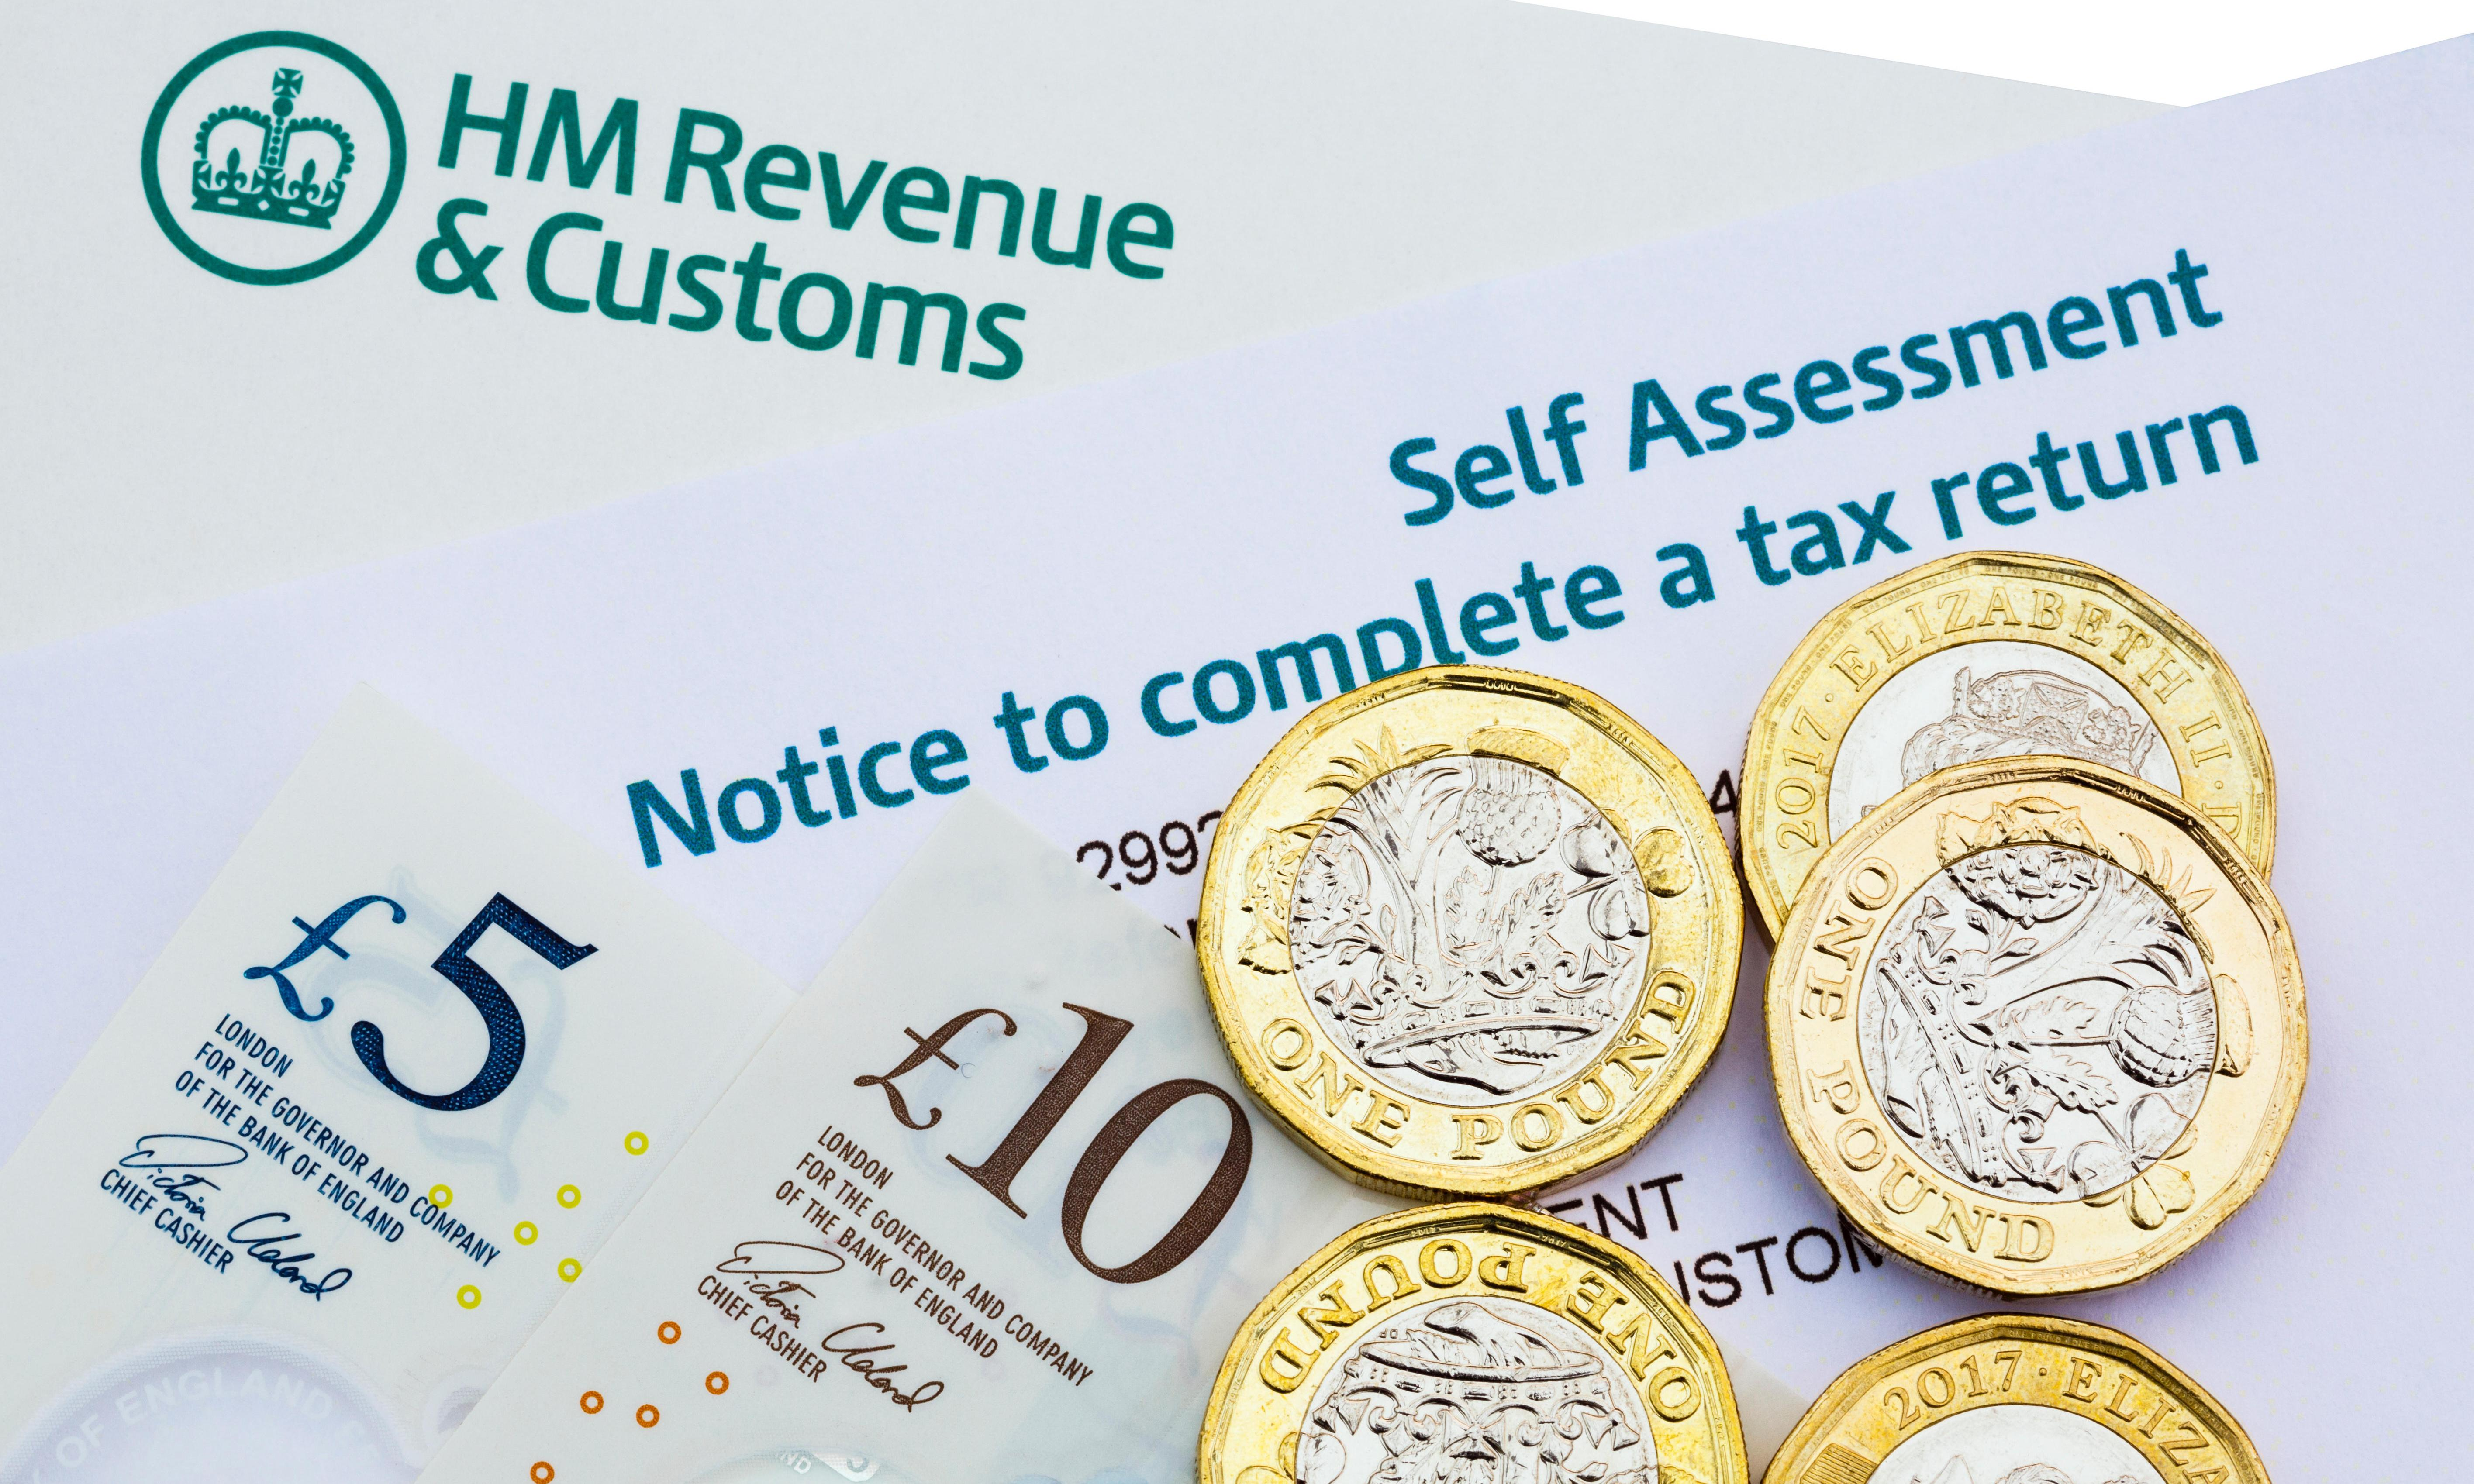 HMRC says 3 million people still have not filed annual tax return